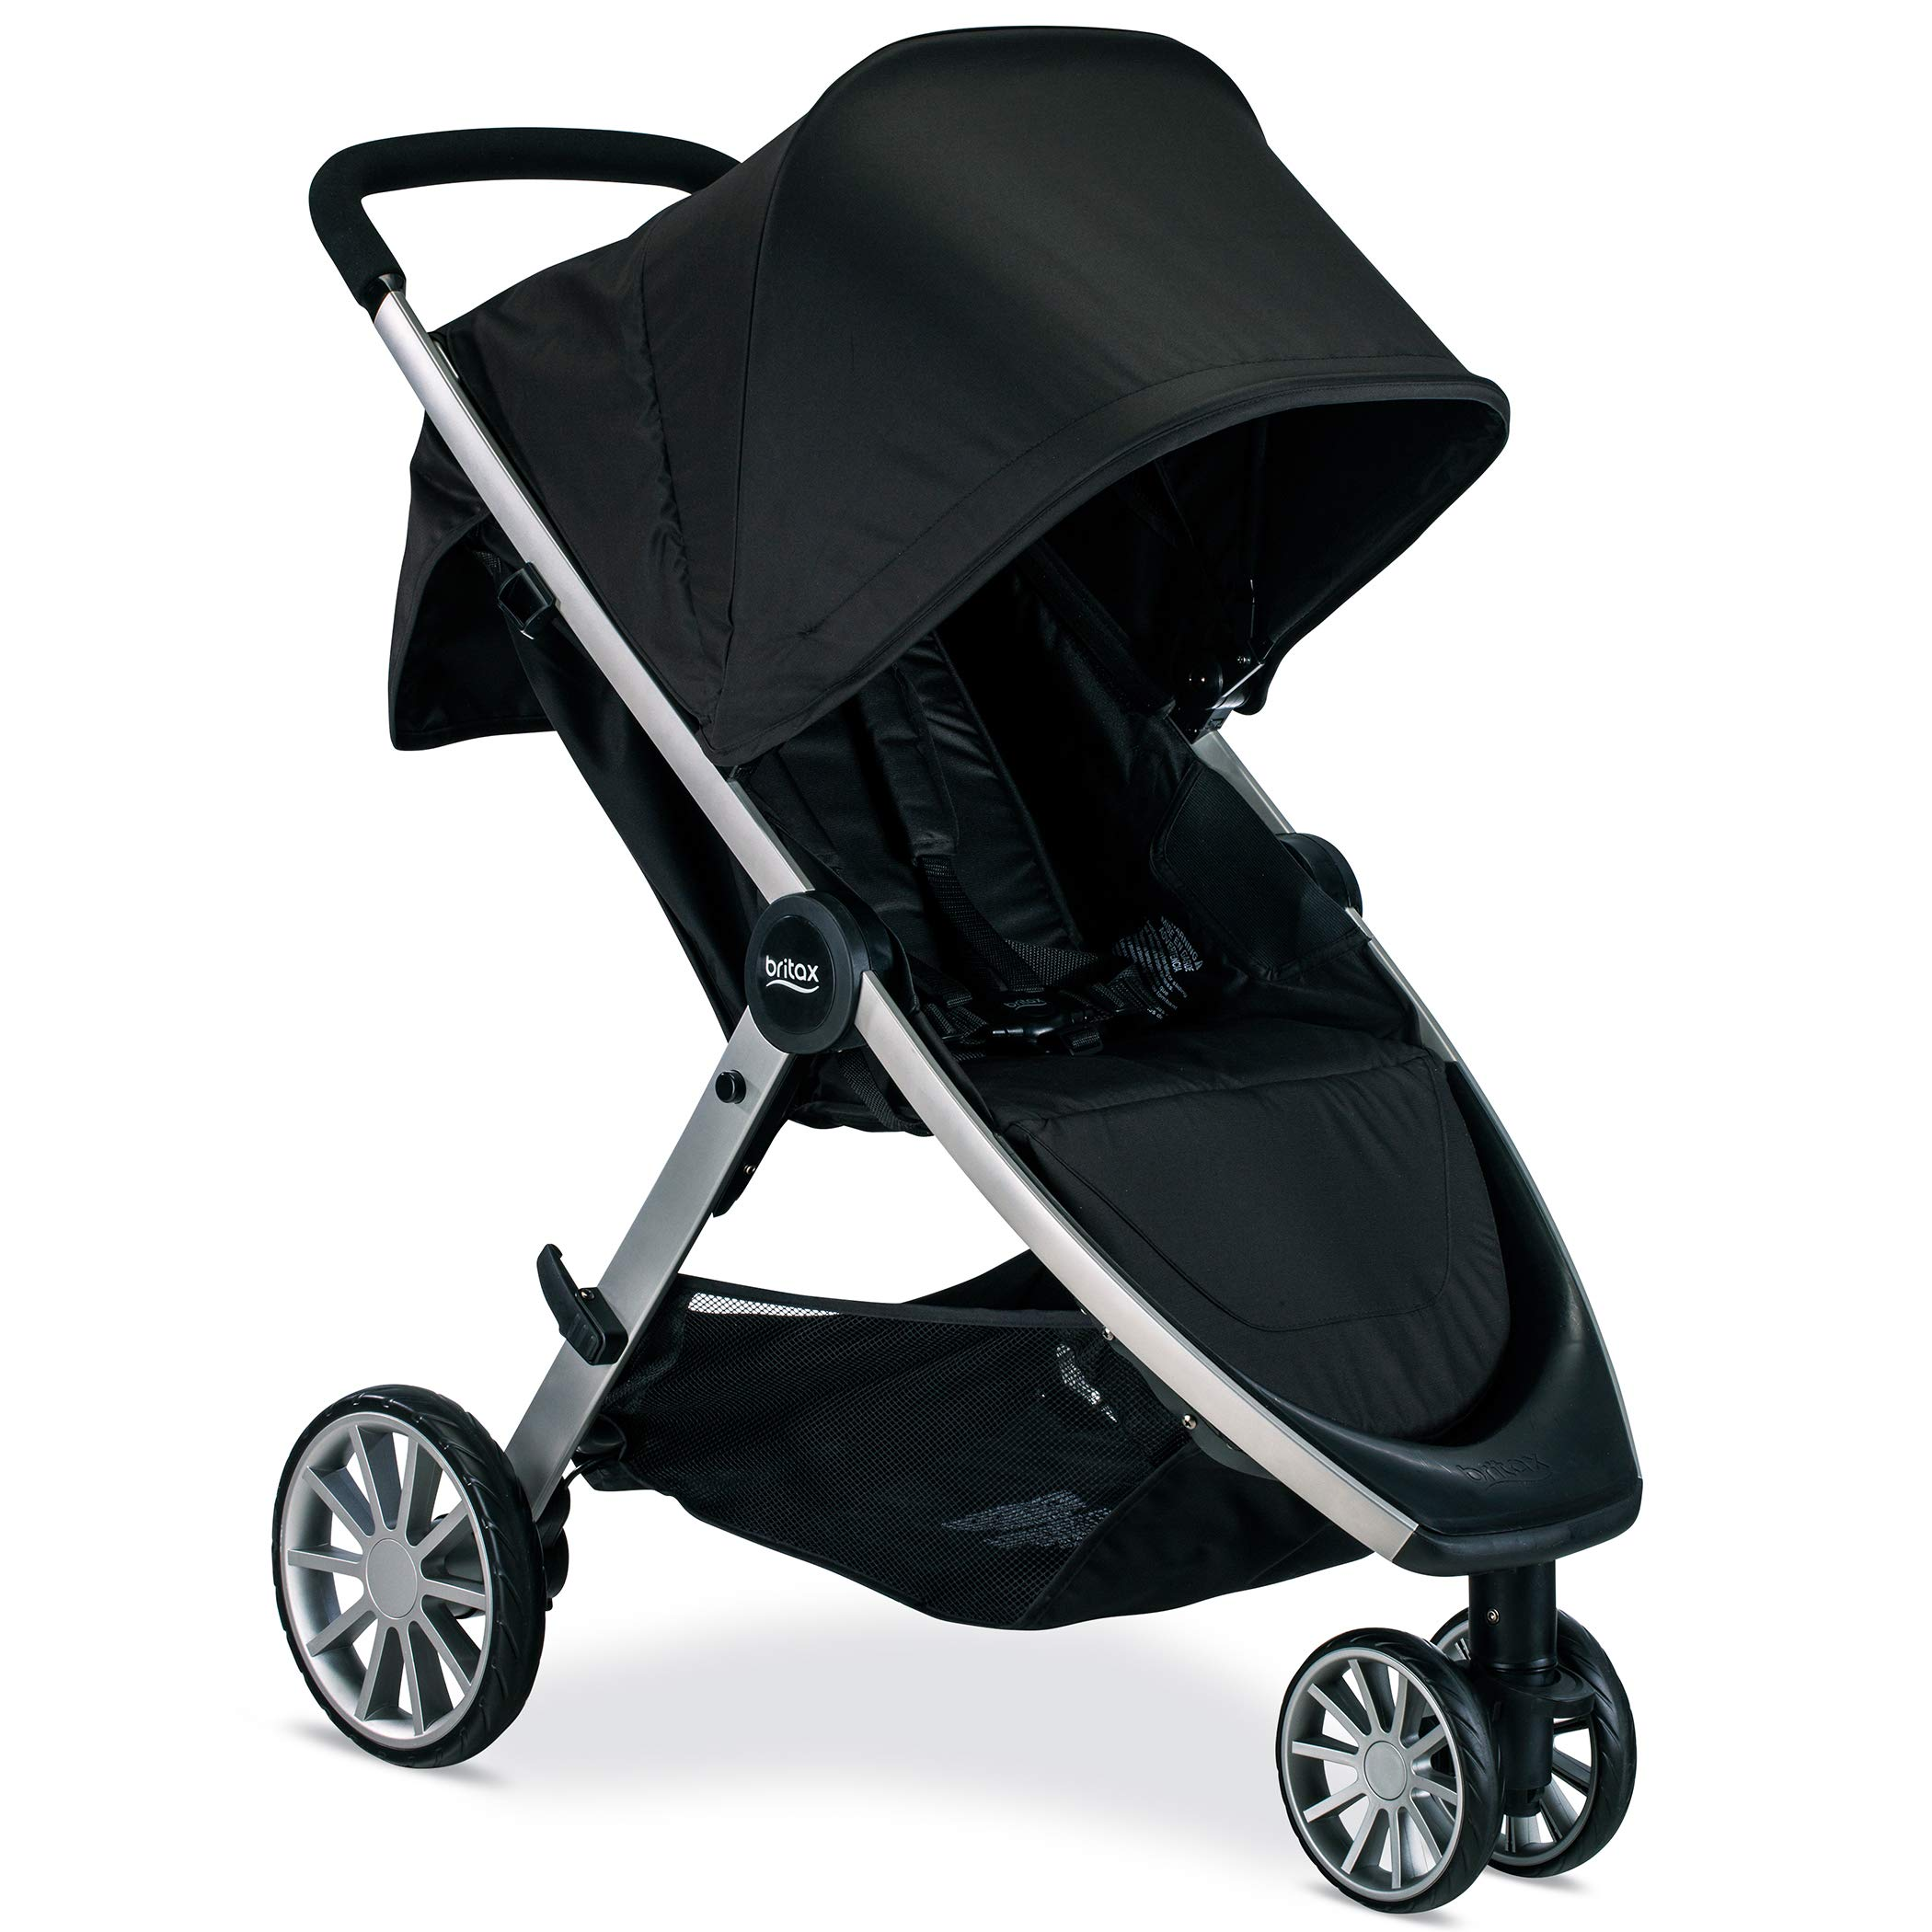 Britax B-Lively Lightweight Stroller - Up to 55 pounds - Car Seat Compatible - UV 50+ Canopy - Easy Fold, Raven by BRITAX